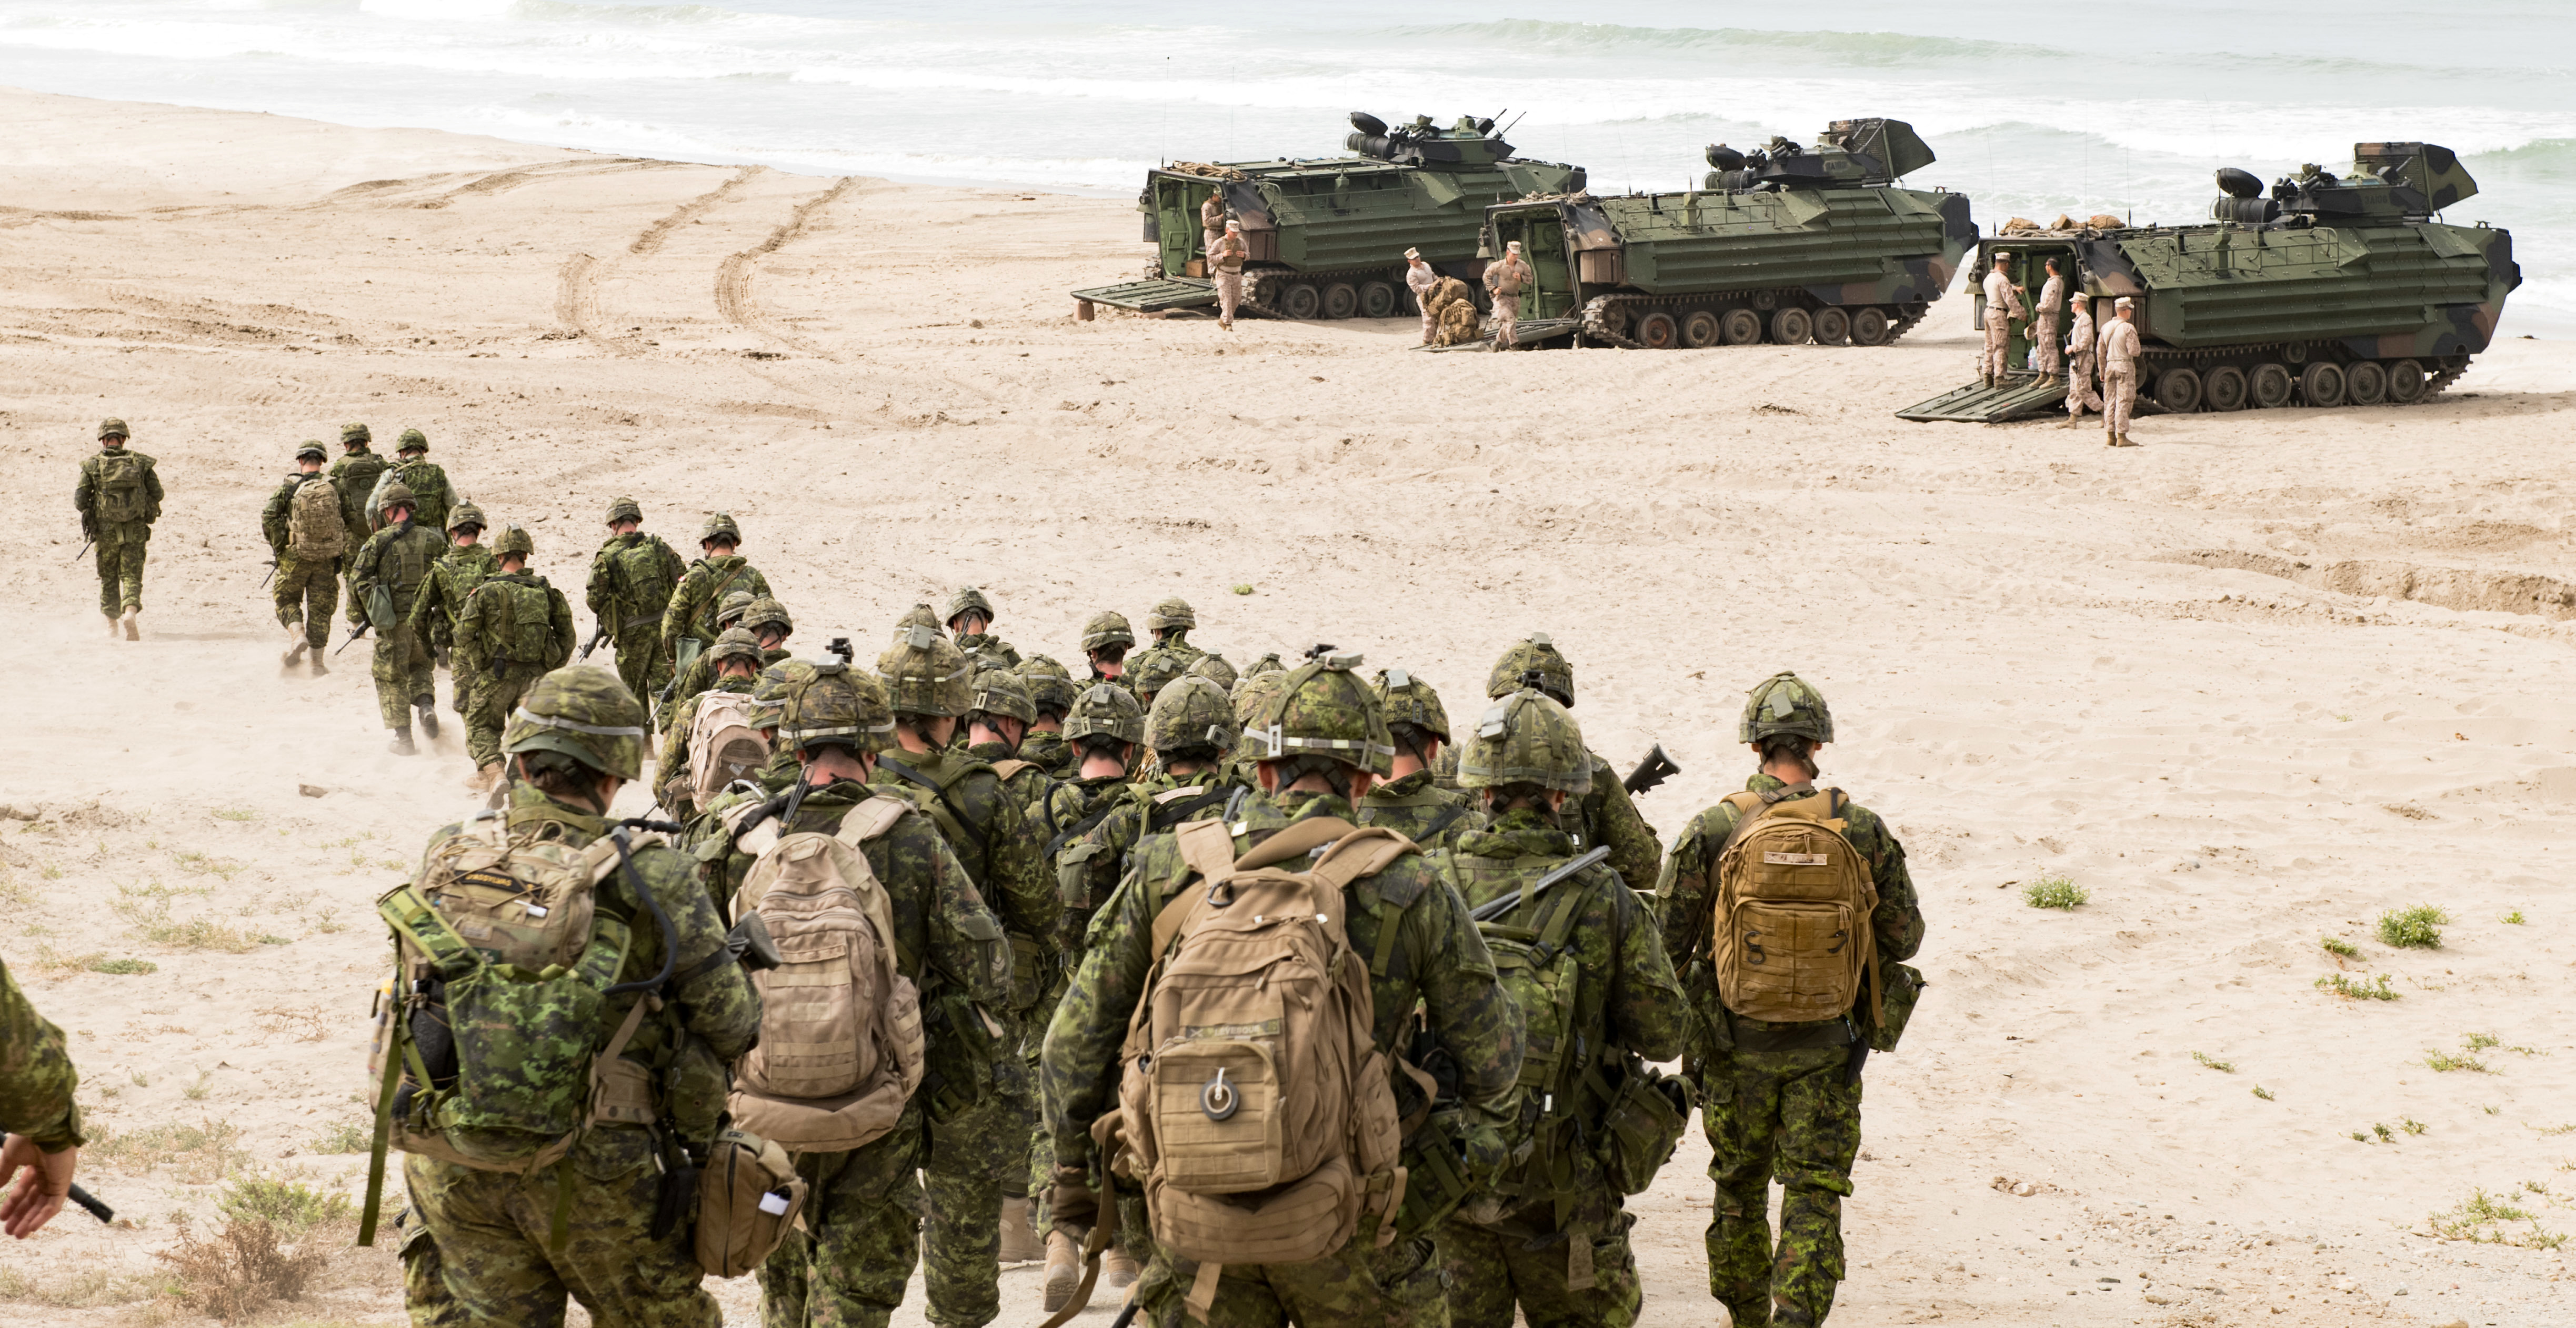 Canadian troops of the 2nd Battalion Royal 22e Regiment Bravo Company move toward amphibious assault vehicles during the biennial Rim of the Pacific (RIMPAC) exercise at Red Beach Training Area, Camp Pendelton, California, June 27, 2018. (Canadian Ar...